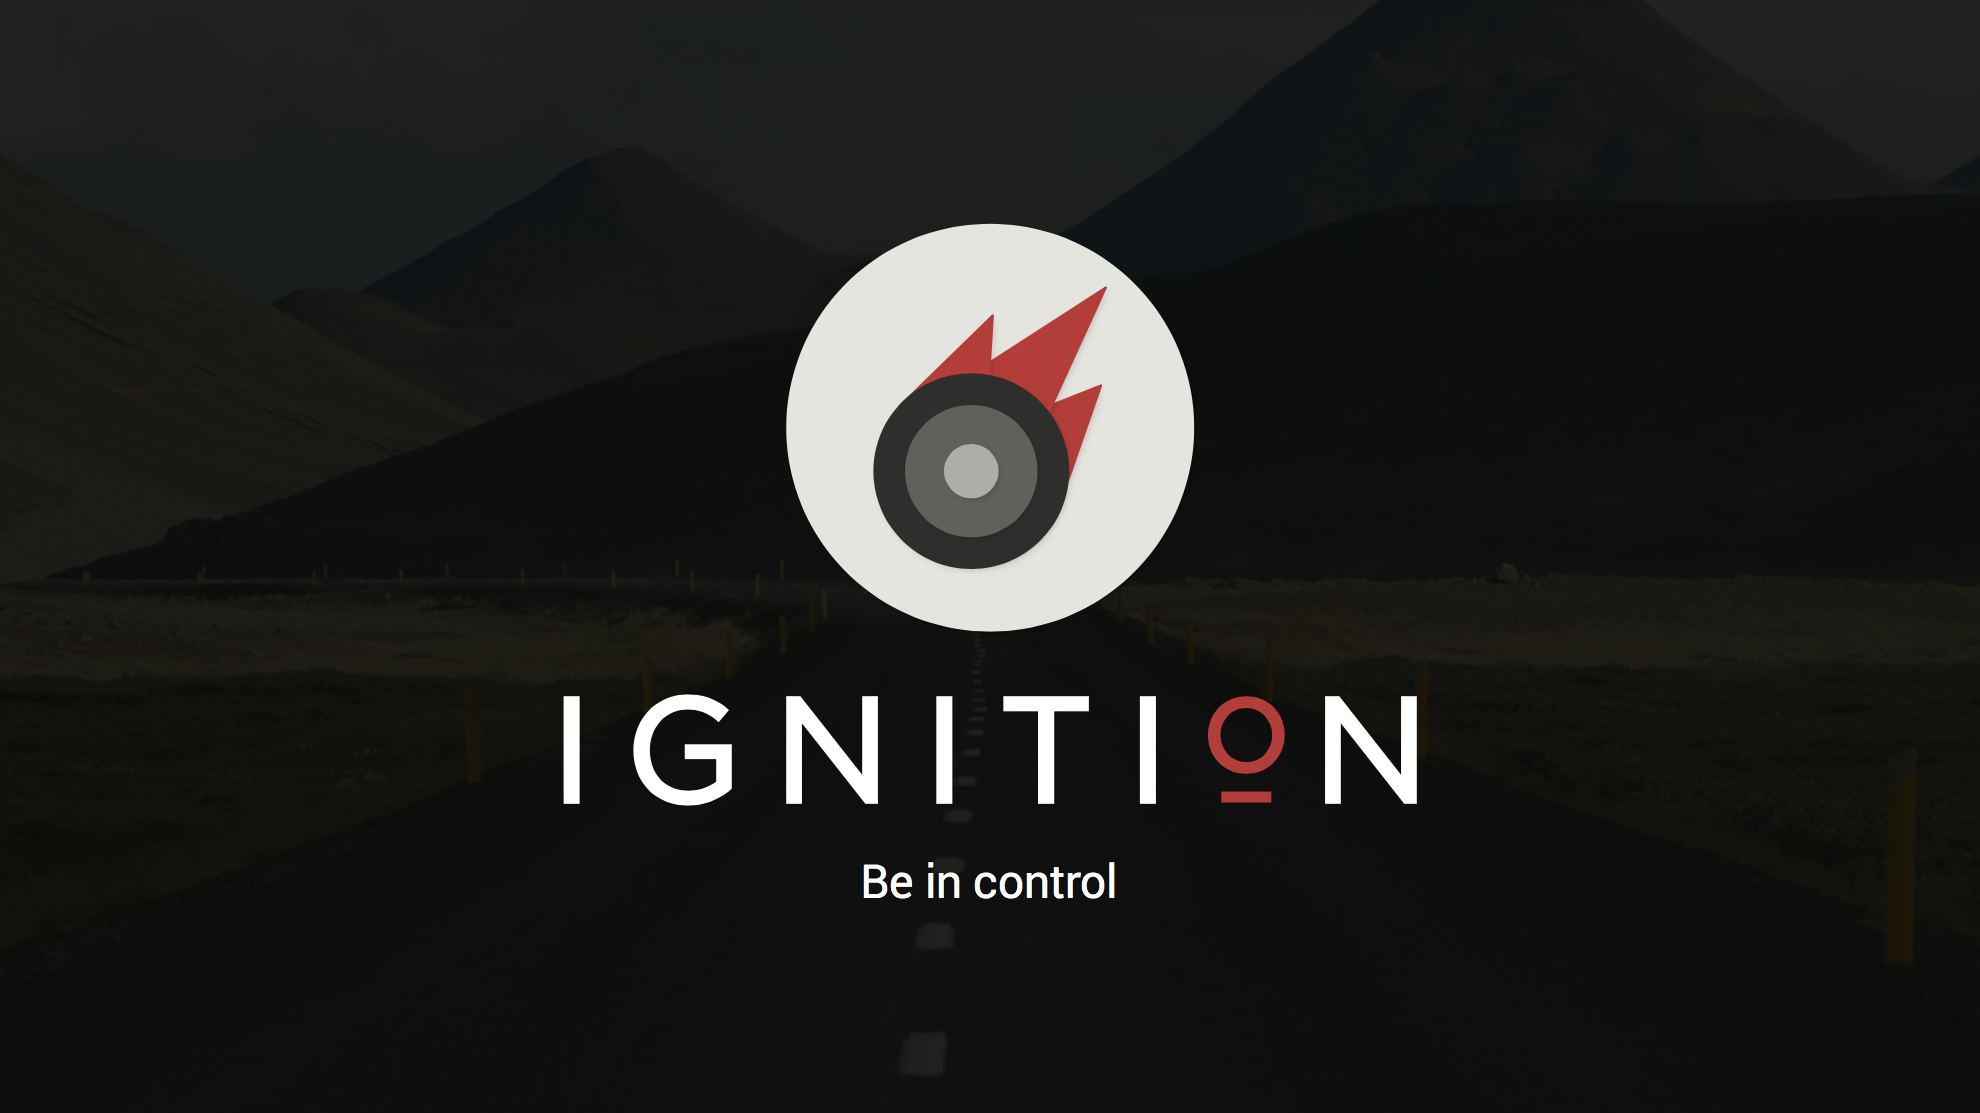 Ignition mobile app